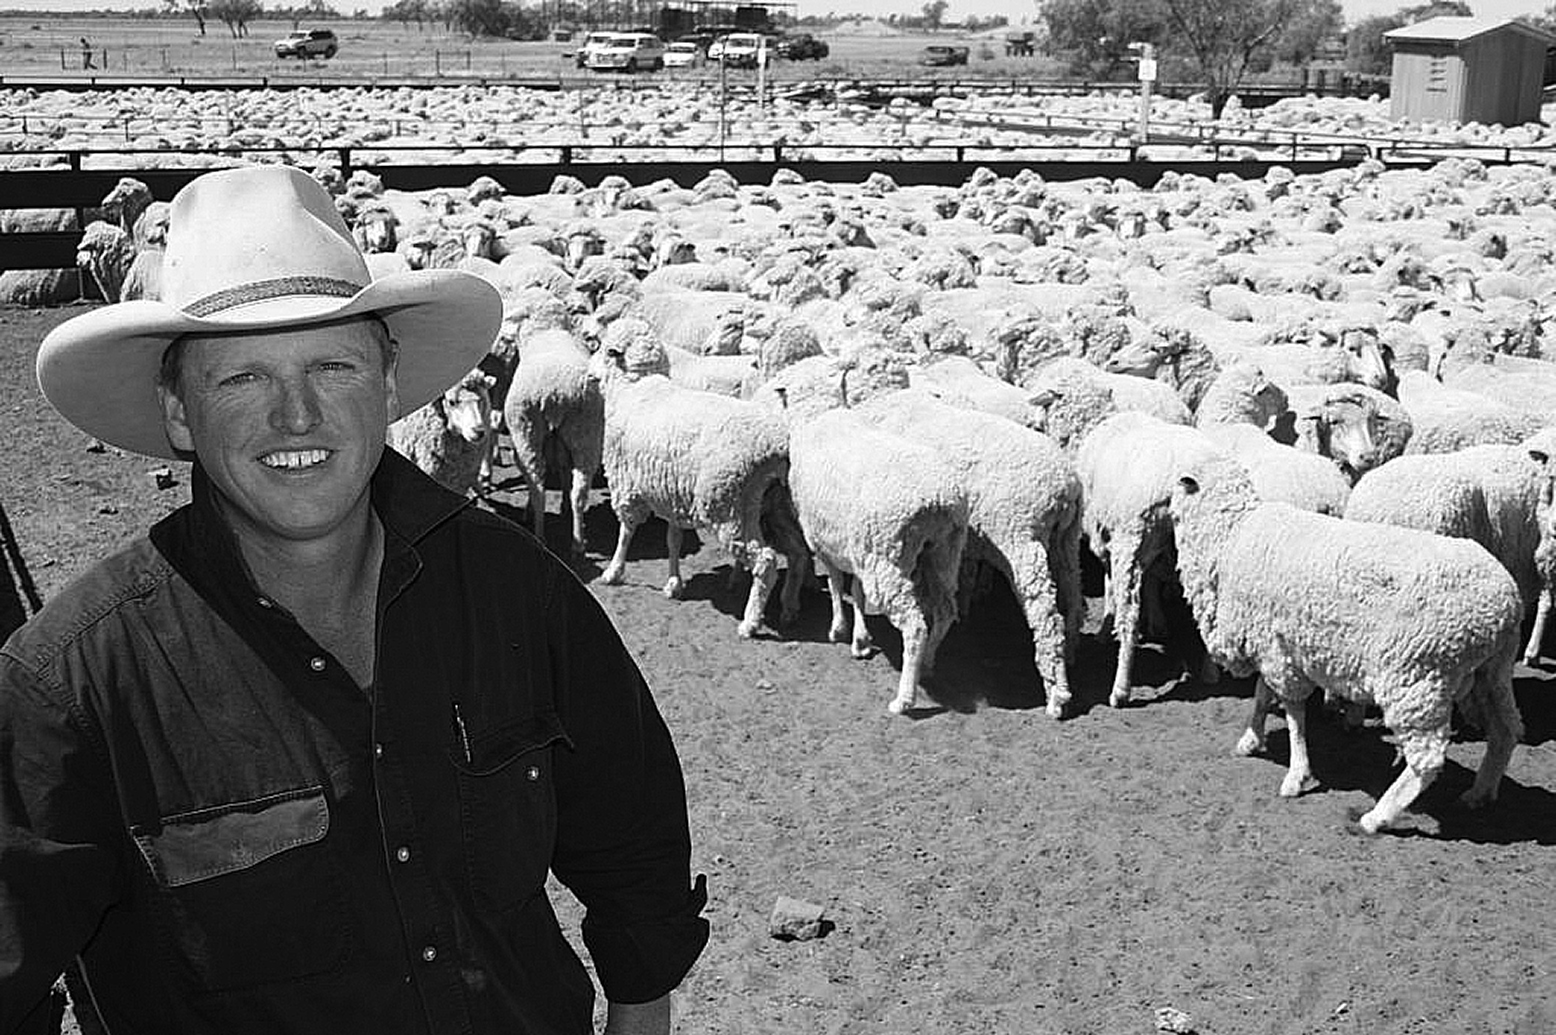 Magnus Aitken from Steam Plains at Conargo will be speaking on the benefits of six month shearing at the Wool Seminar to be held at Shear Outback in Hay on May 23.  Photo by Liz Meecham